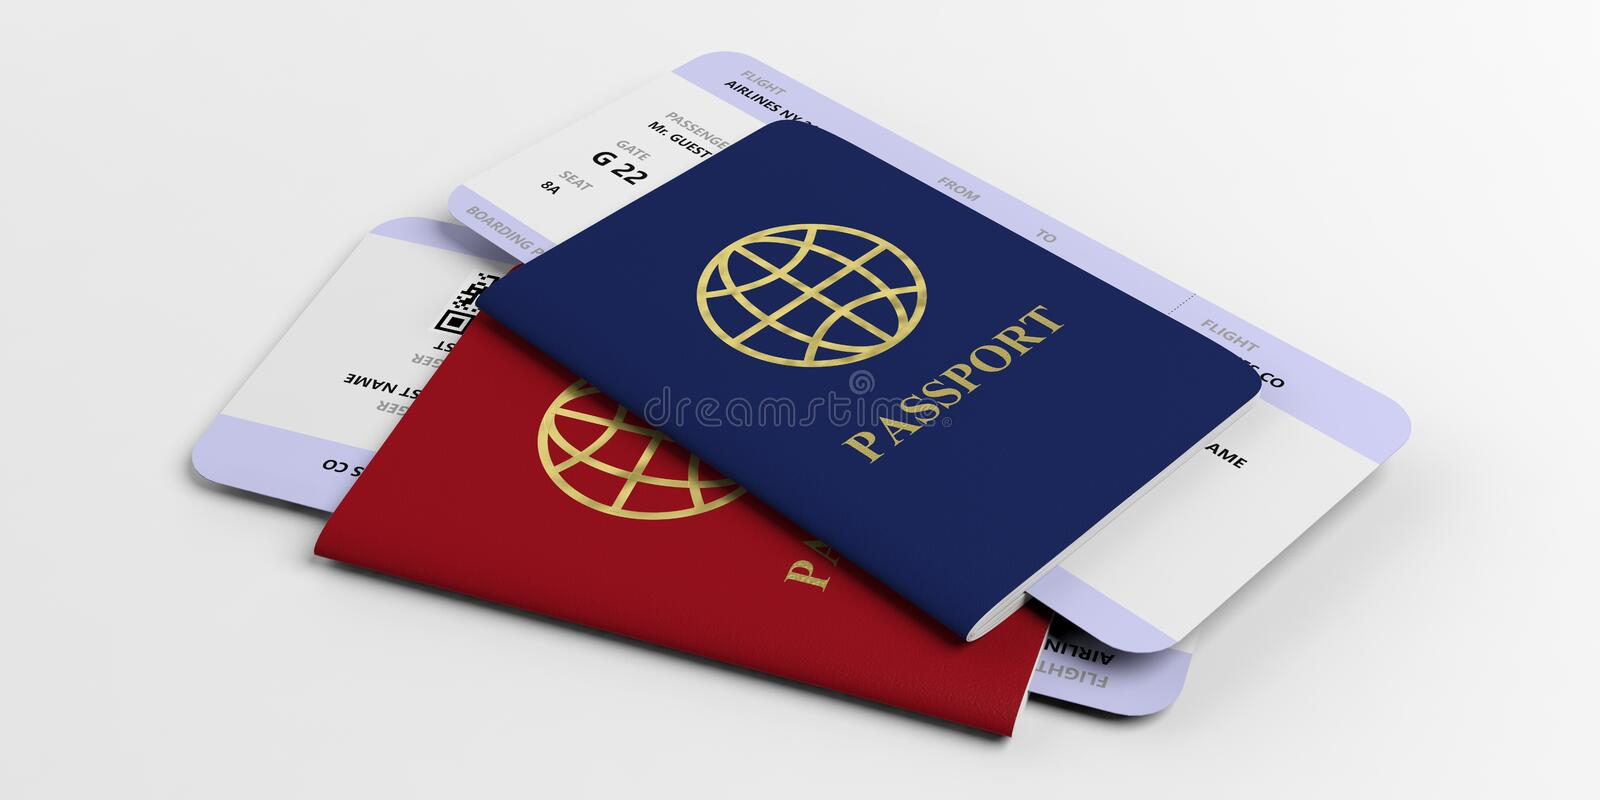 Two passports and airplane tickets isolated on white background. 3d illustration royalty free illustration